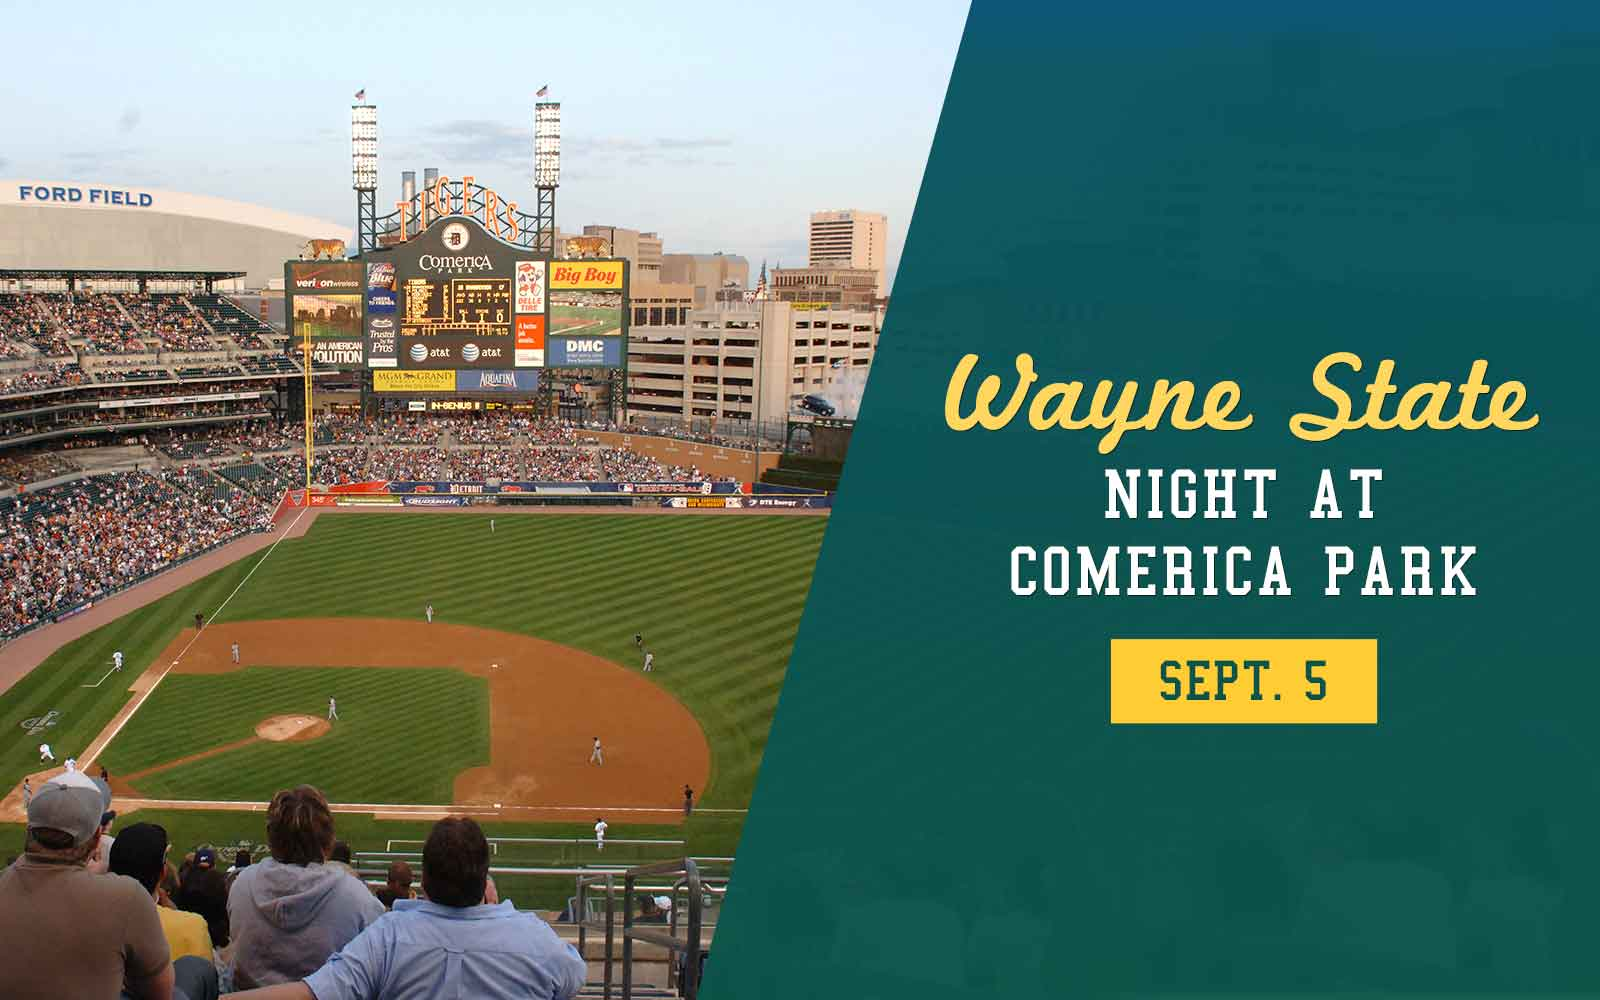 Come cheer the Tigers on to victory over the Kansas City Royals at the third annual Wayne State Night!